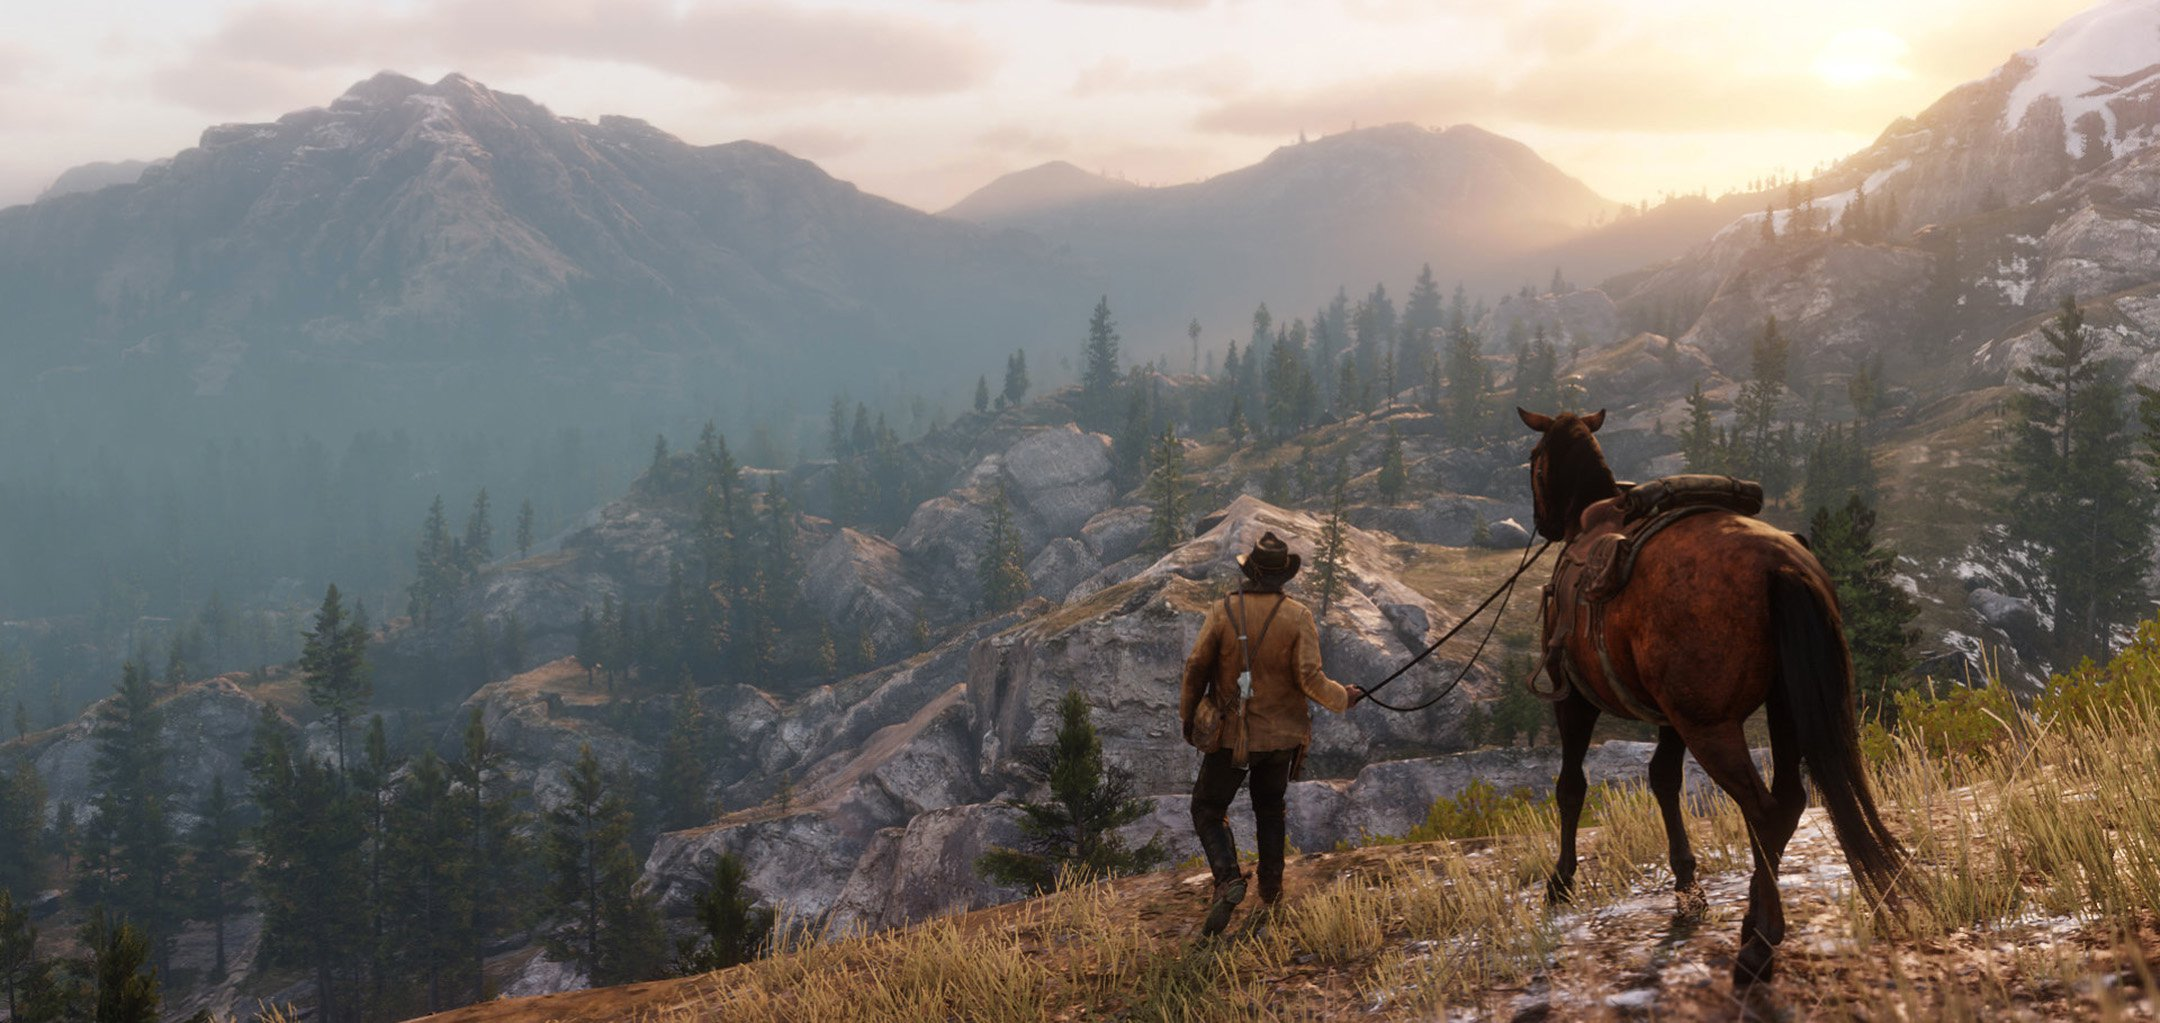 Arthur Morgan leads his horse across a dramatic landscape in a screenshot from 'Red Dead Redemption 2' (2018) Rockstar Games.jpg